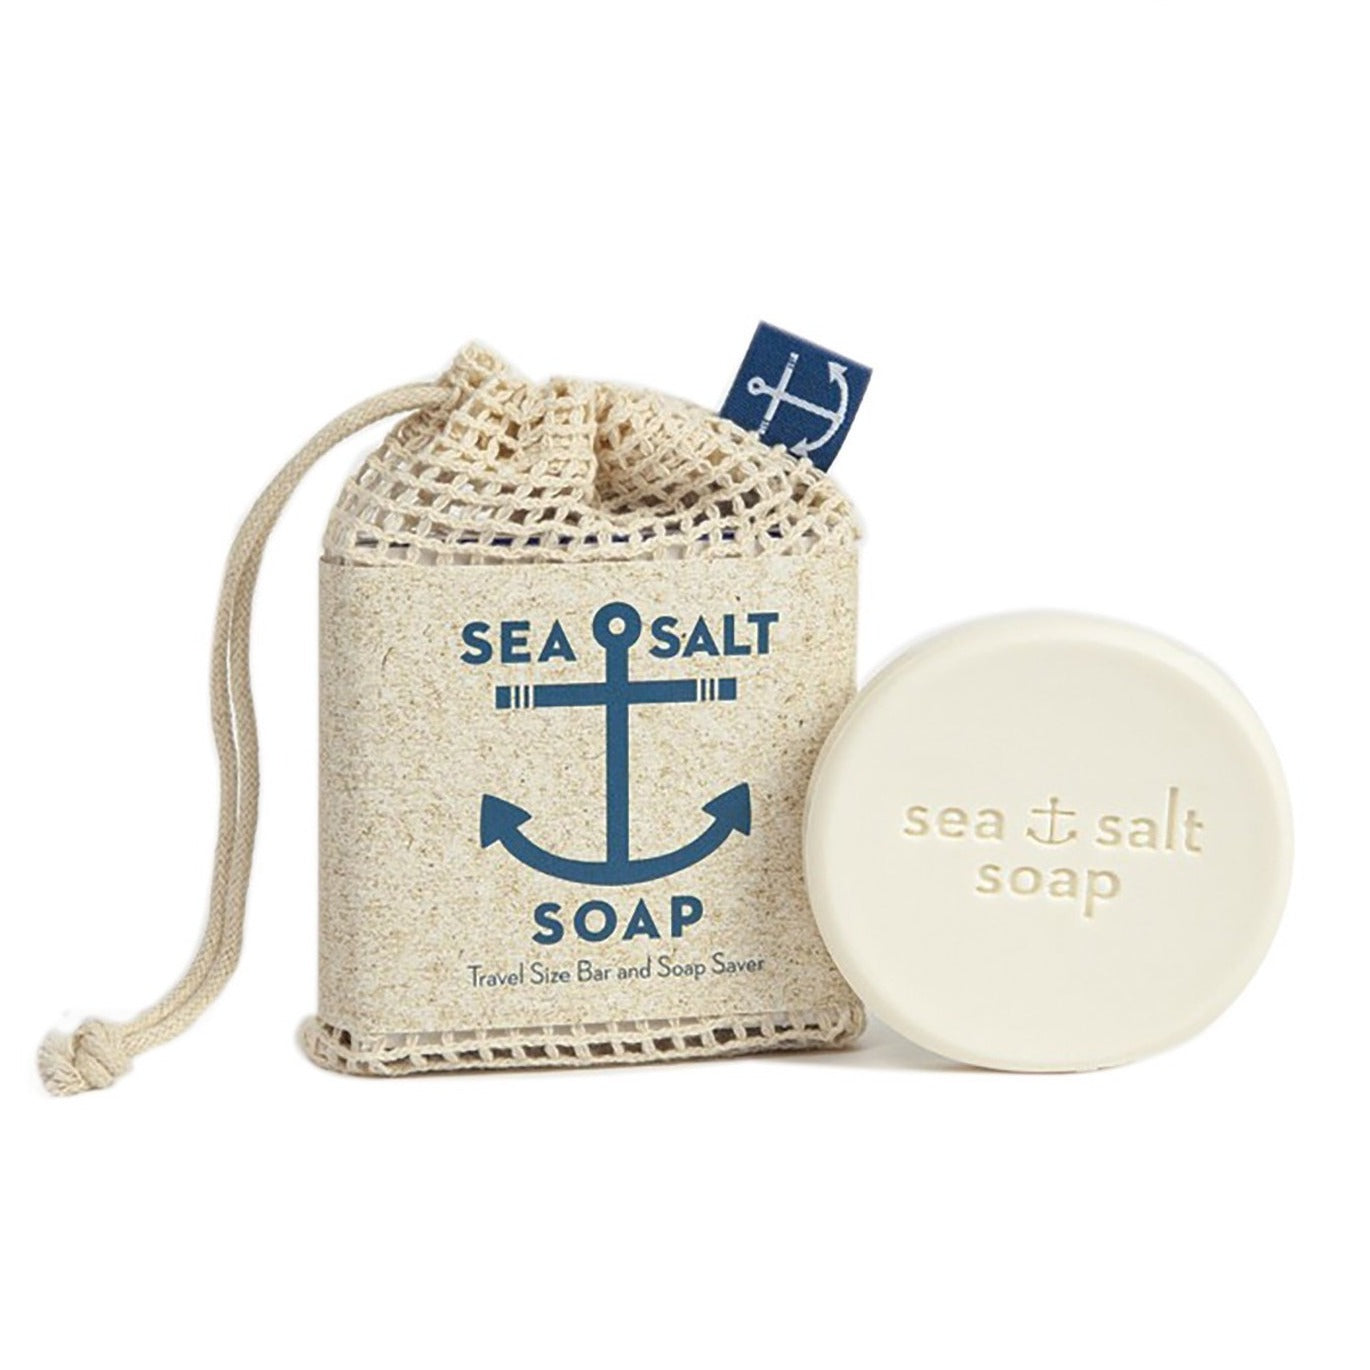 Sea Salt Soap Travel Size Bar & Bag